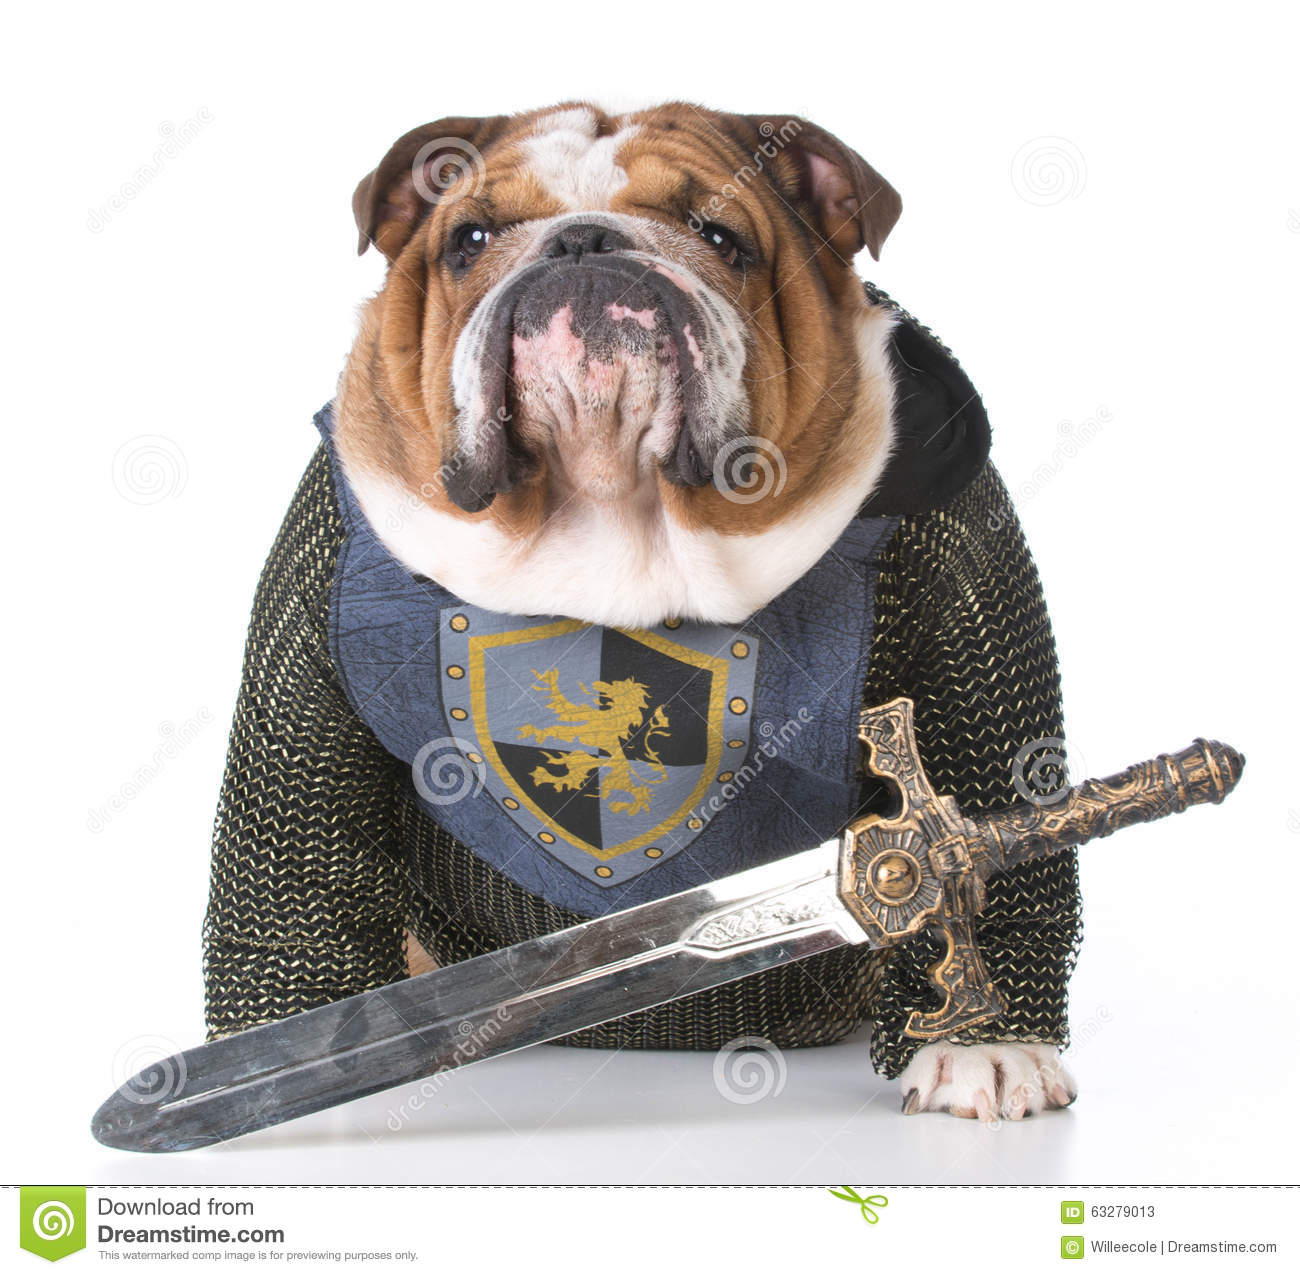 [Image: guard-dog-bulldog-dressed-up-like-knight...279013.jpg]